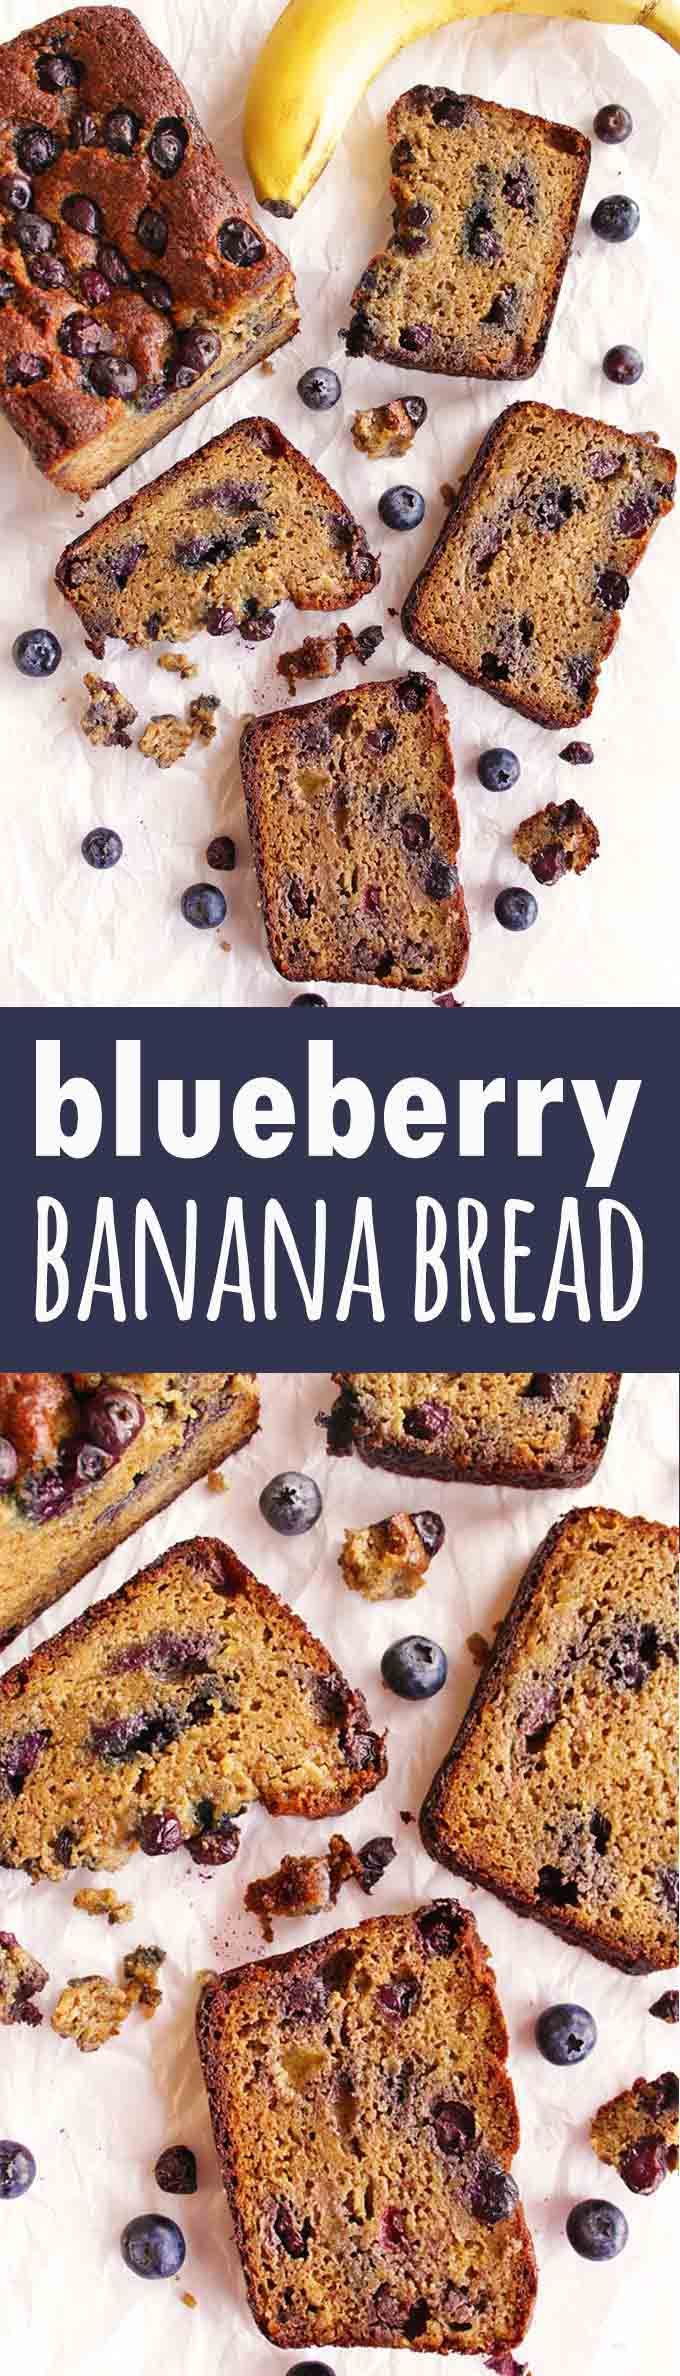 Blueberry banana bread - Sweet and tender banana bread studded with fresh blueberries. This blueberry banana bread is gluten free, grain free, and only requires 12 ingredients. It's perfect for breakfast, a snack, or as a healthier dessert. A must try recipe for all of the cozy feels! | robustrecipes.com